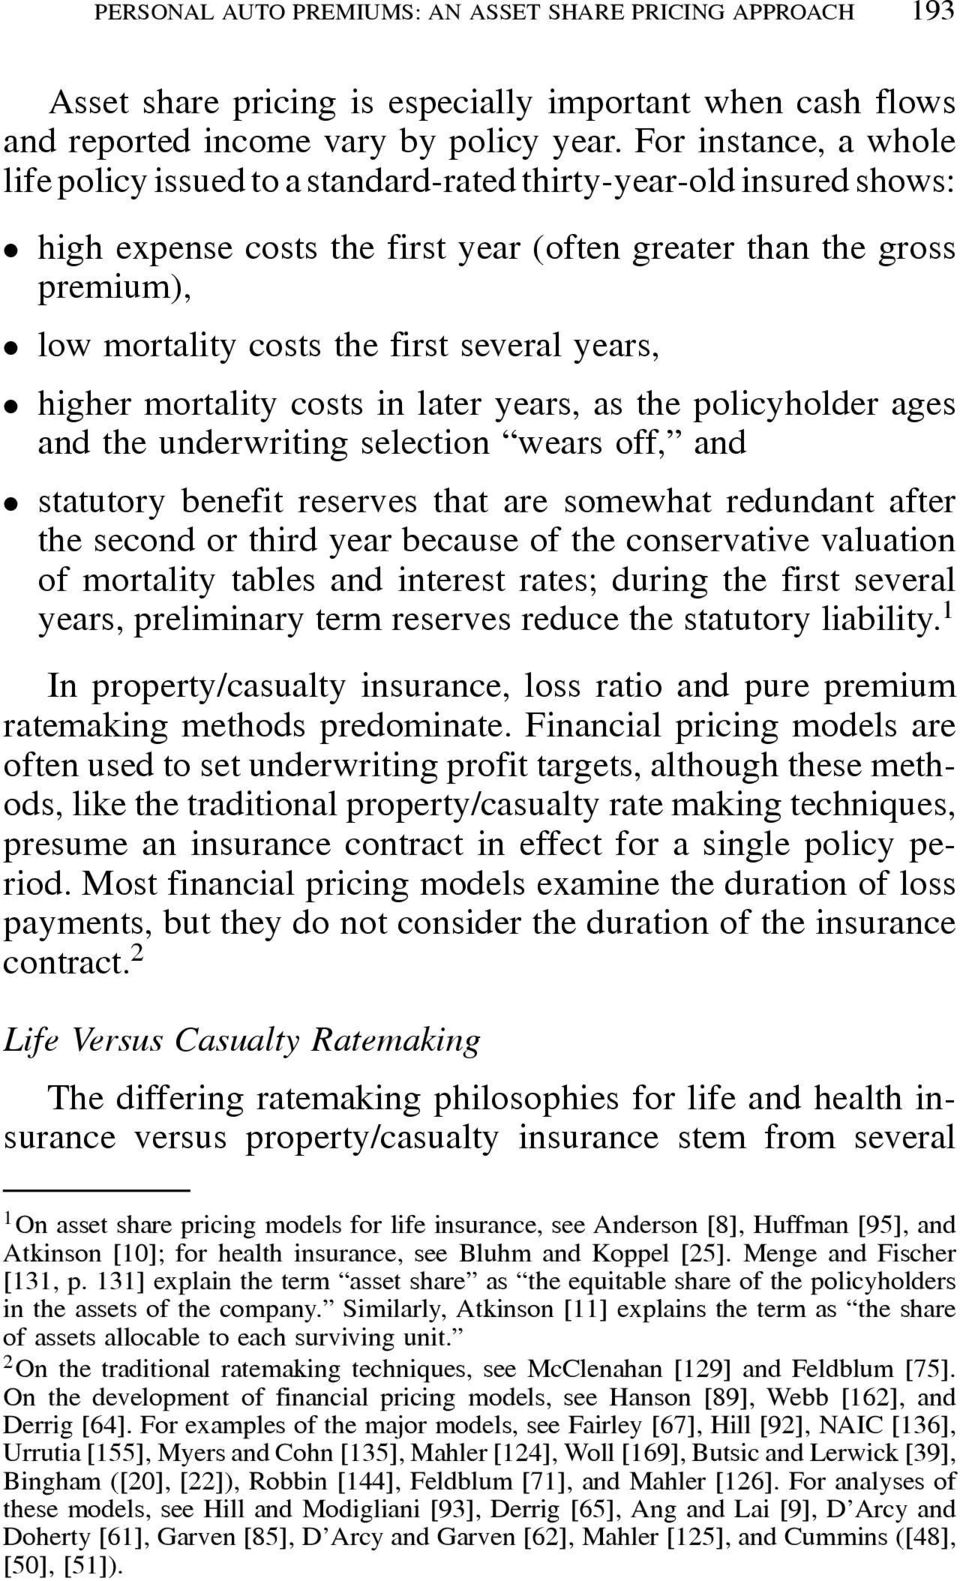 several years, ² higher mortality costs in later years, as the policyholder ages and the underwriting selection wears off, and ² statutory benefit reserves that are somewhat redundant after the